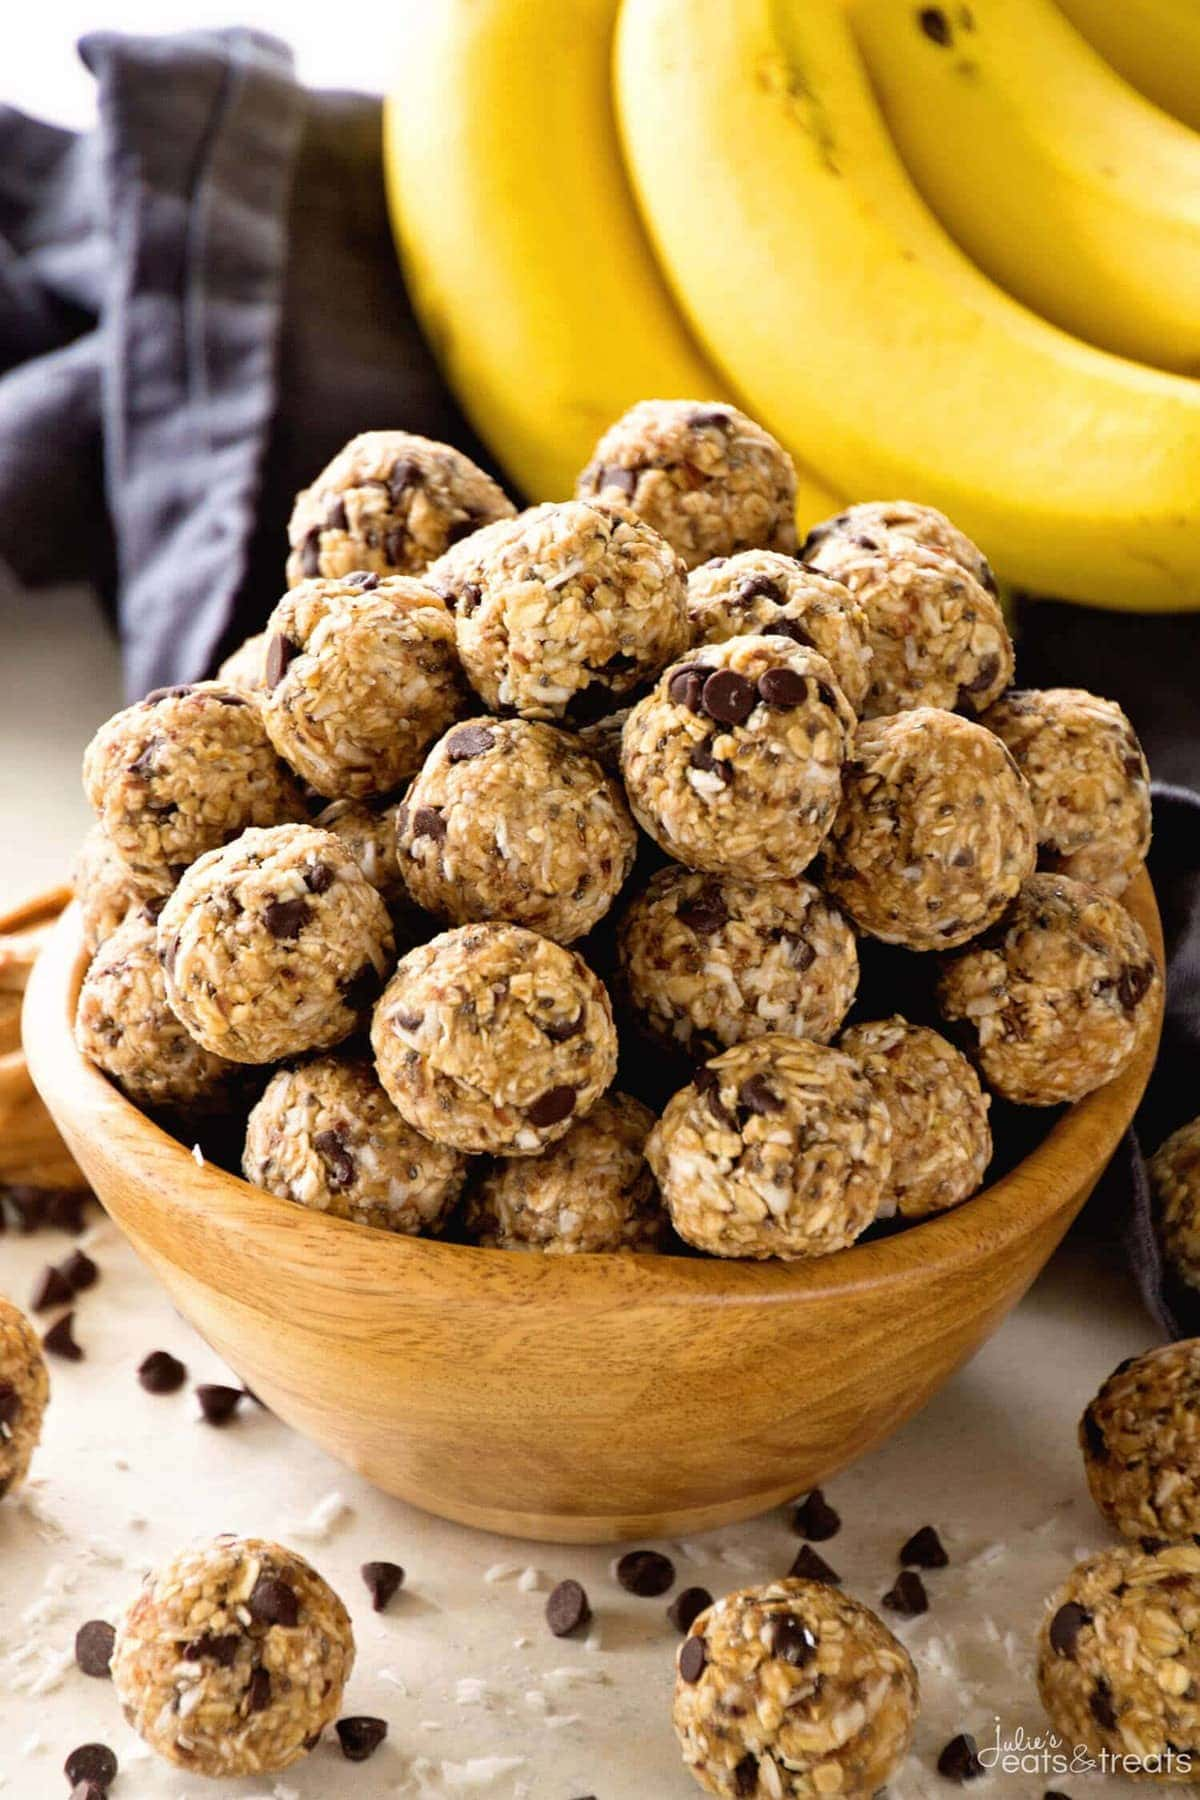 No Bake Chocolate Banana Energy Balls Recipe ~ Delicious Recipe for Energy Bites Loaded with Chocolate Chips, Banana, Coconut, Oats, Flaxseed, Chia Seeds and Spiced with Cinnamon!